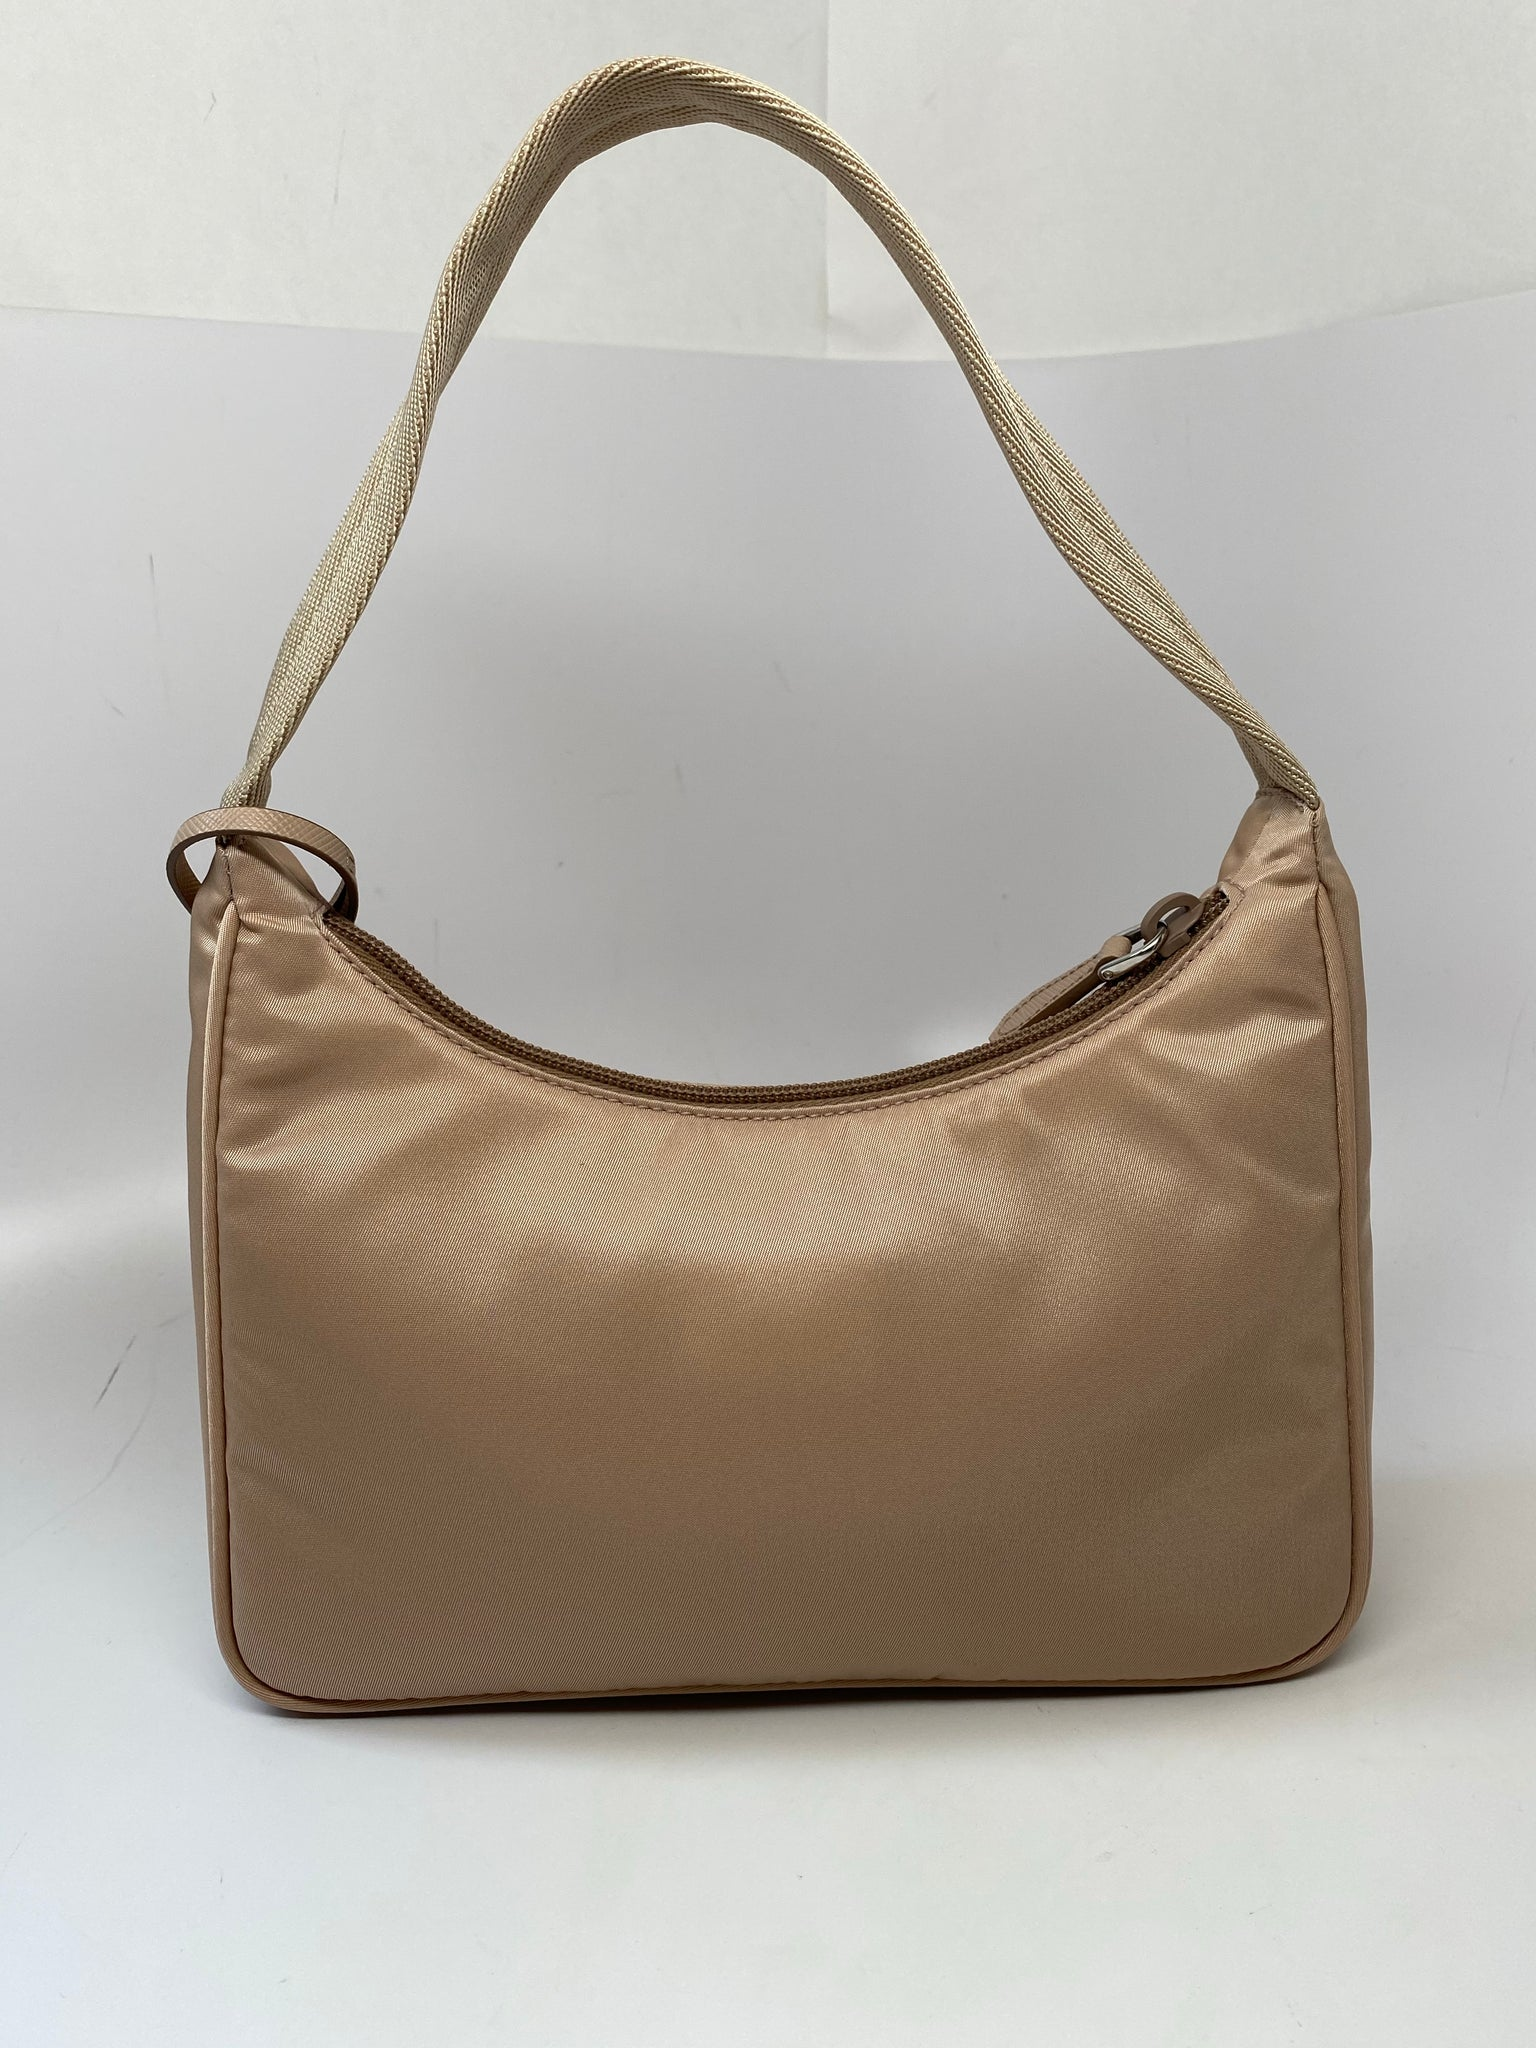 PRADA RE-EDITION 2000 NYLON MINI BAG IN CAMMEO BEIGE